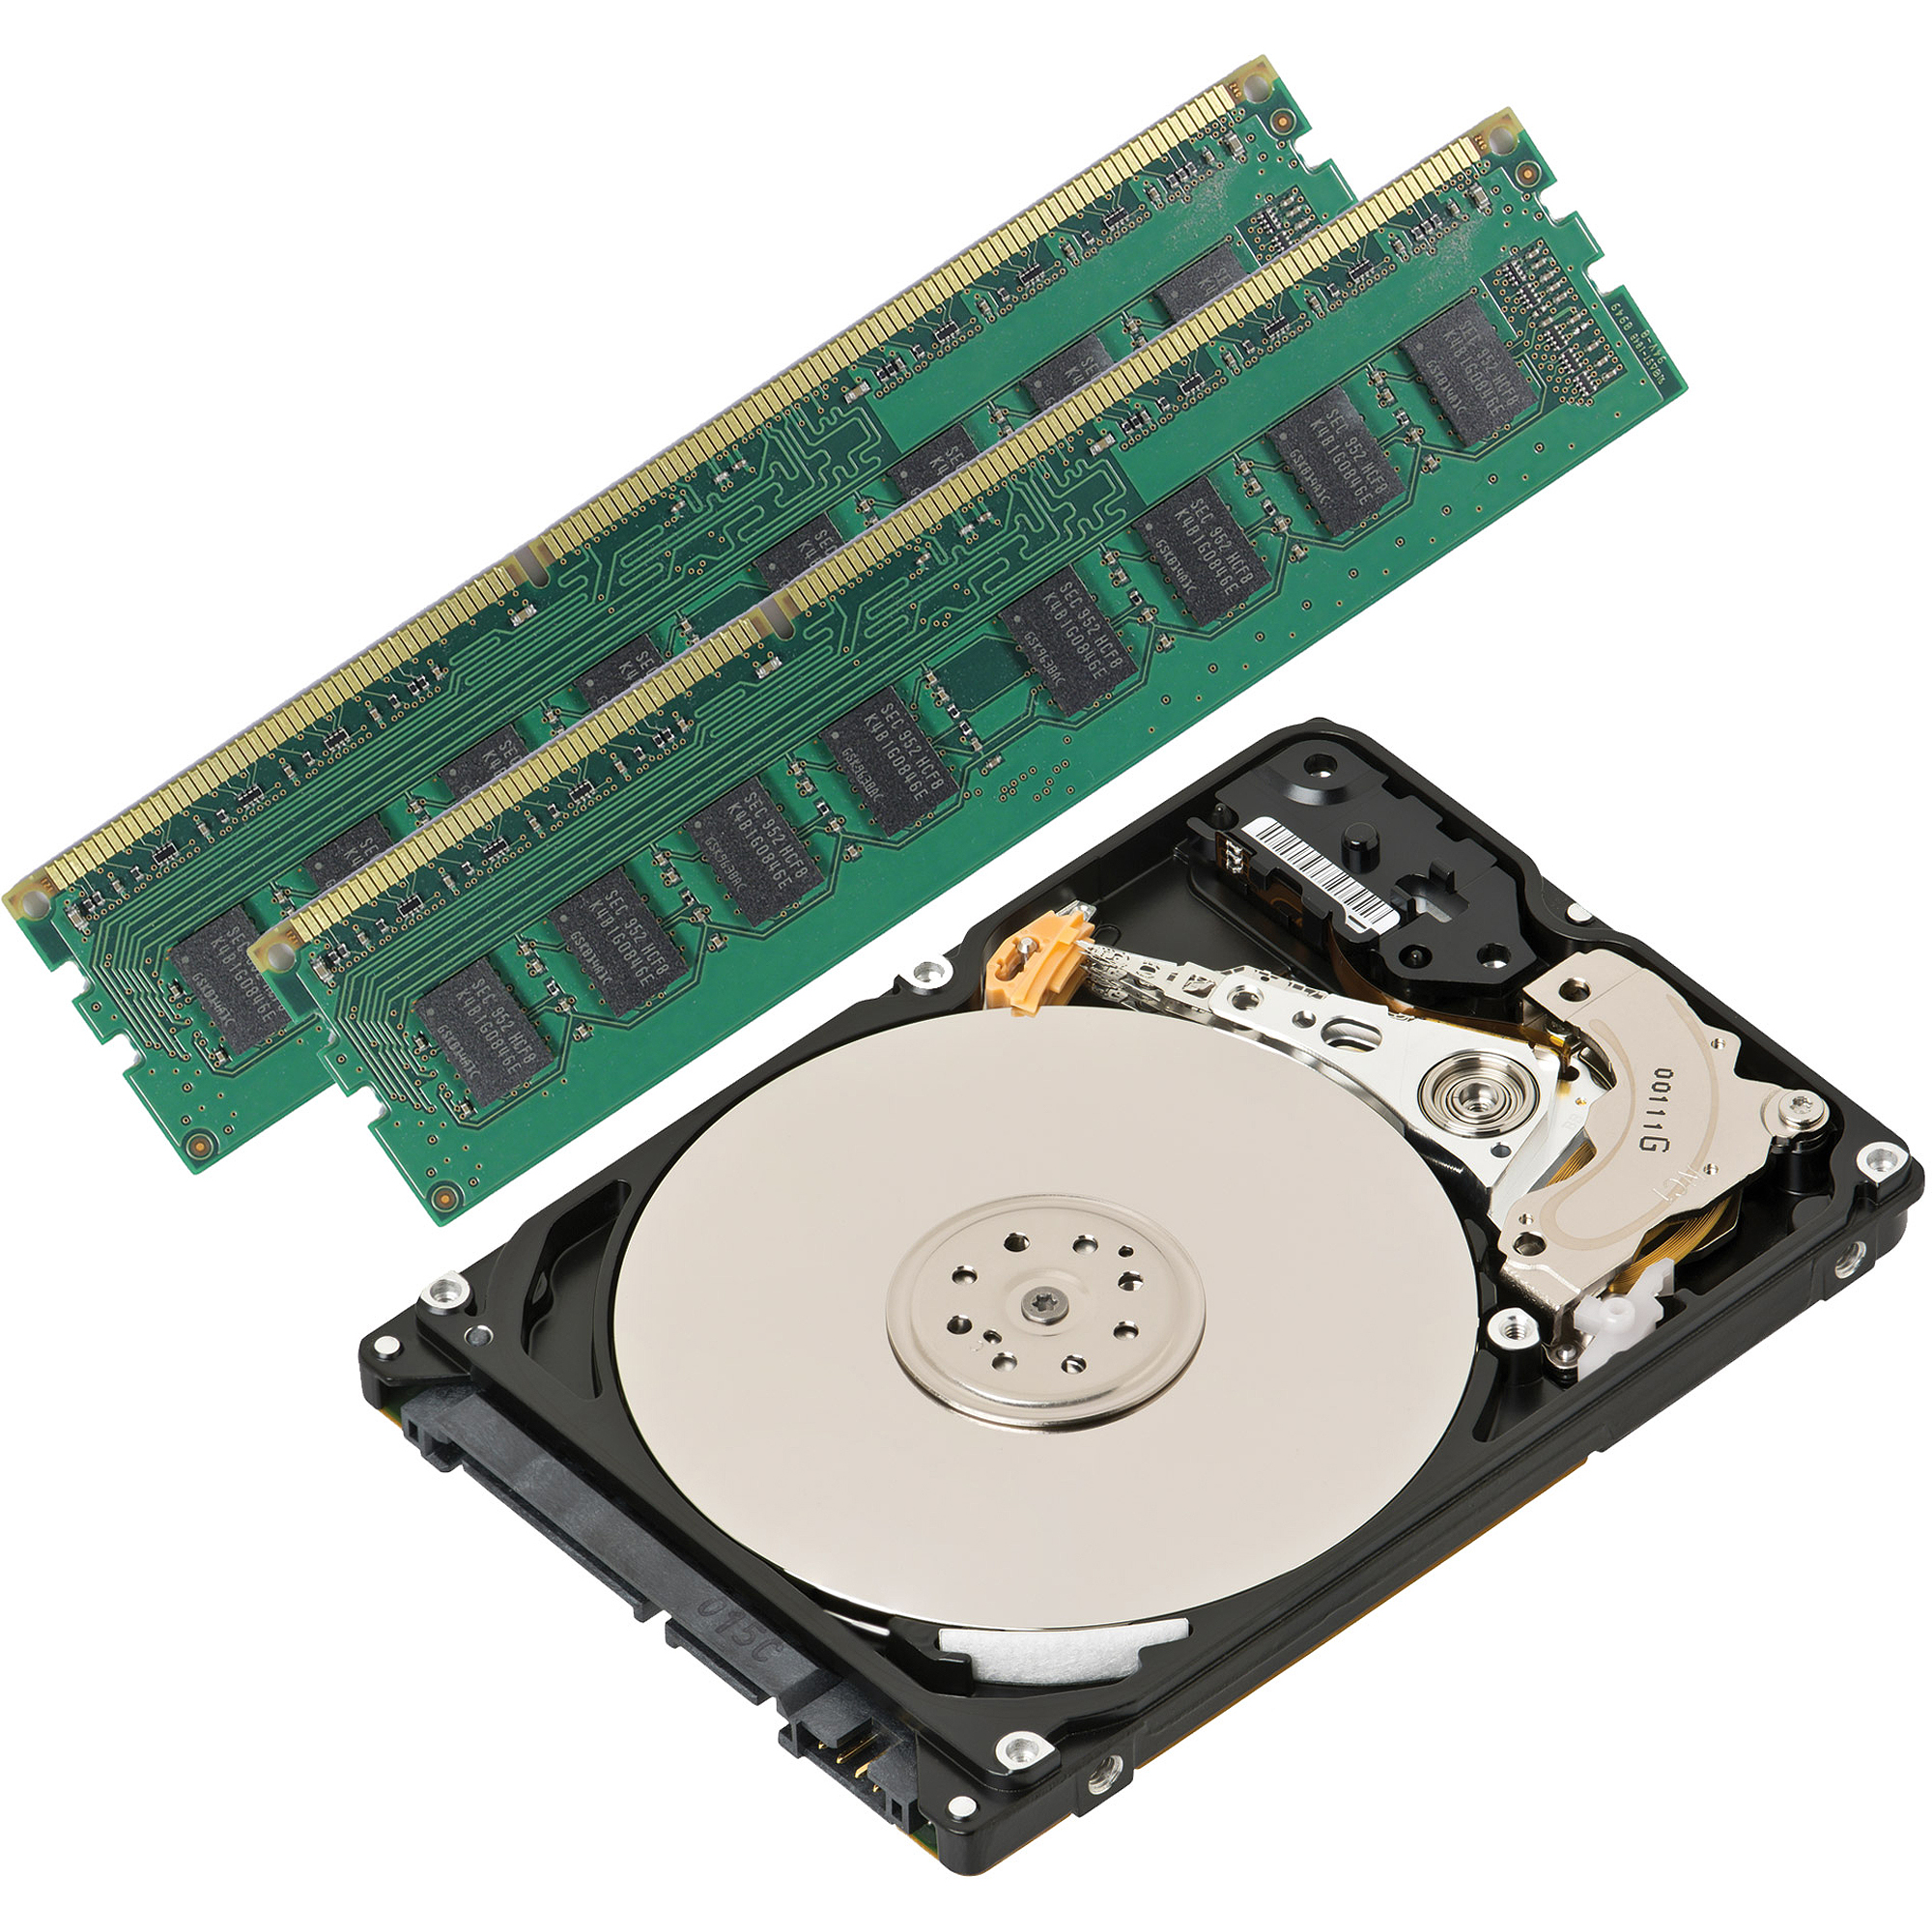 8GB DDR3 + 500GB Hard Drive